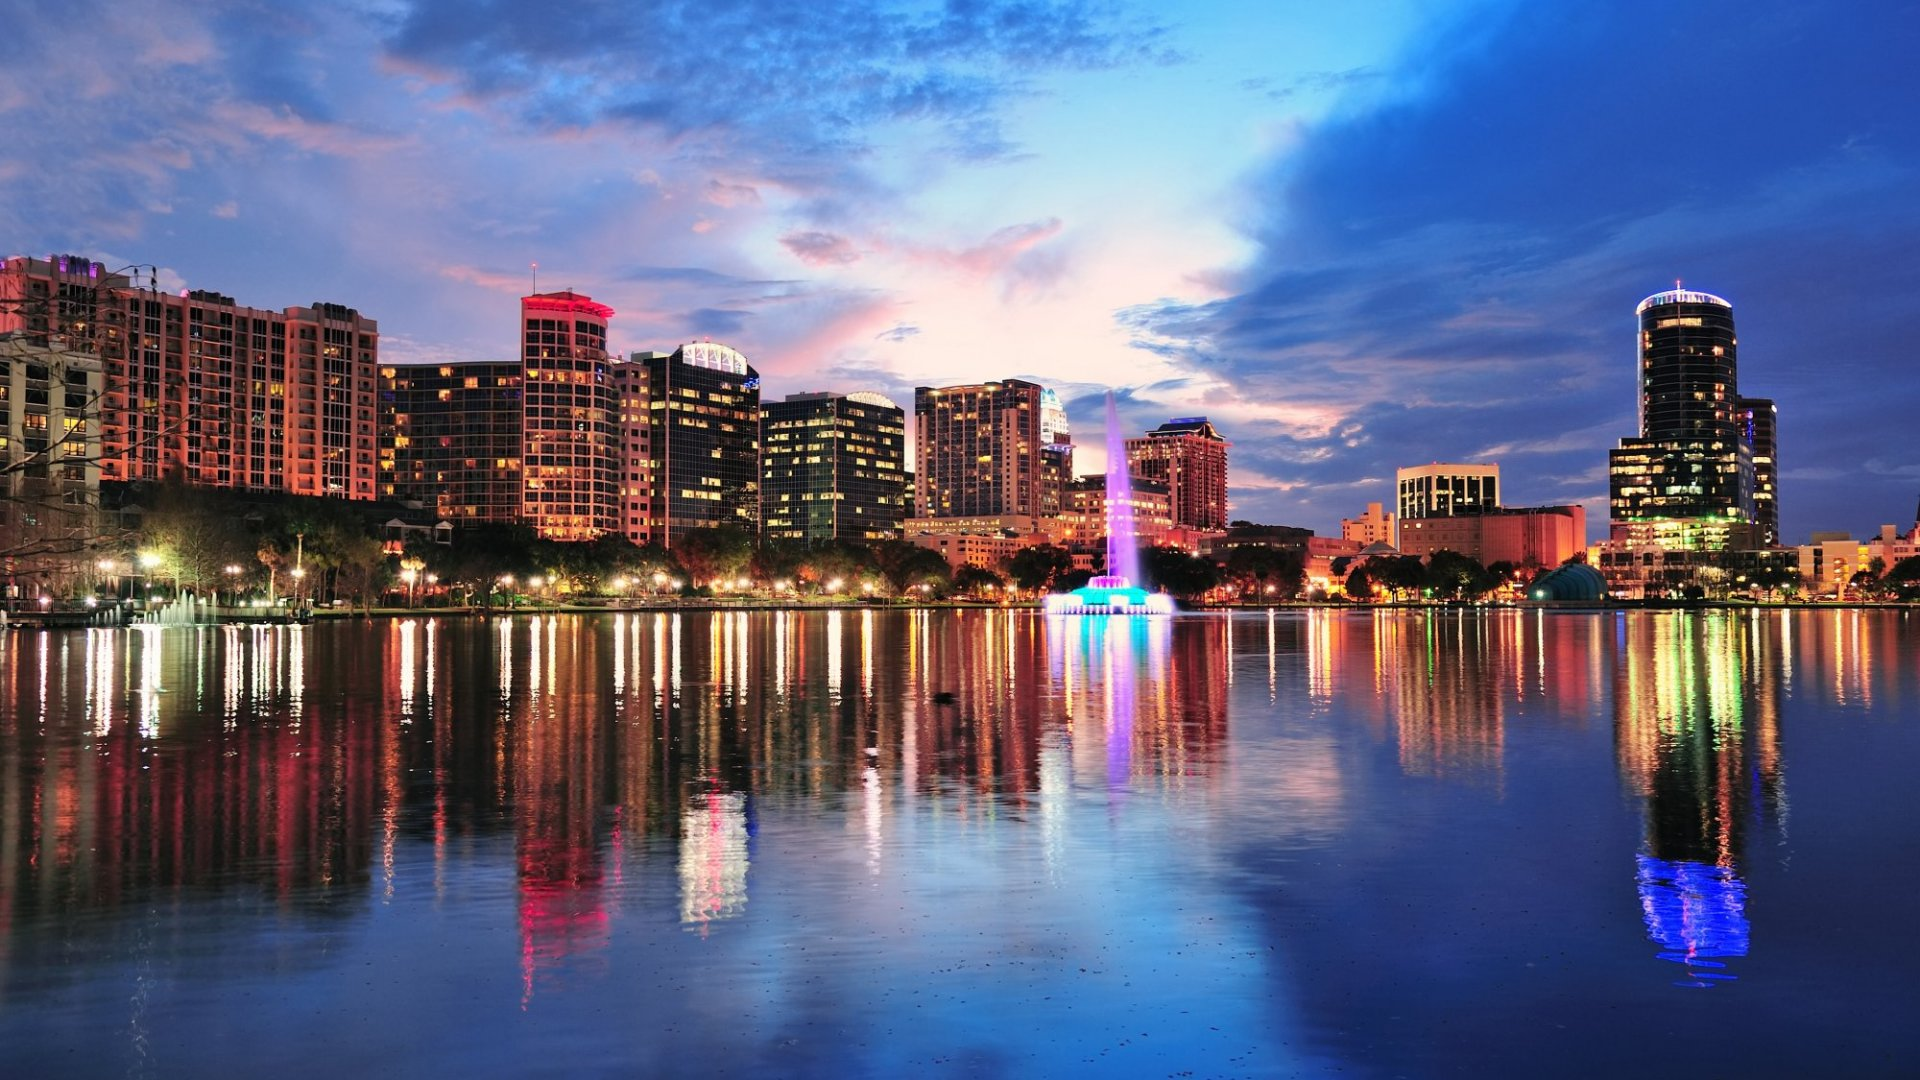 The 10 Fastest-Growing Companies in This Florida City